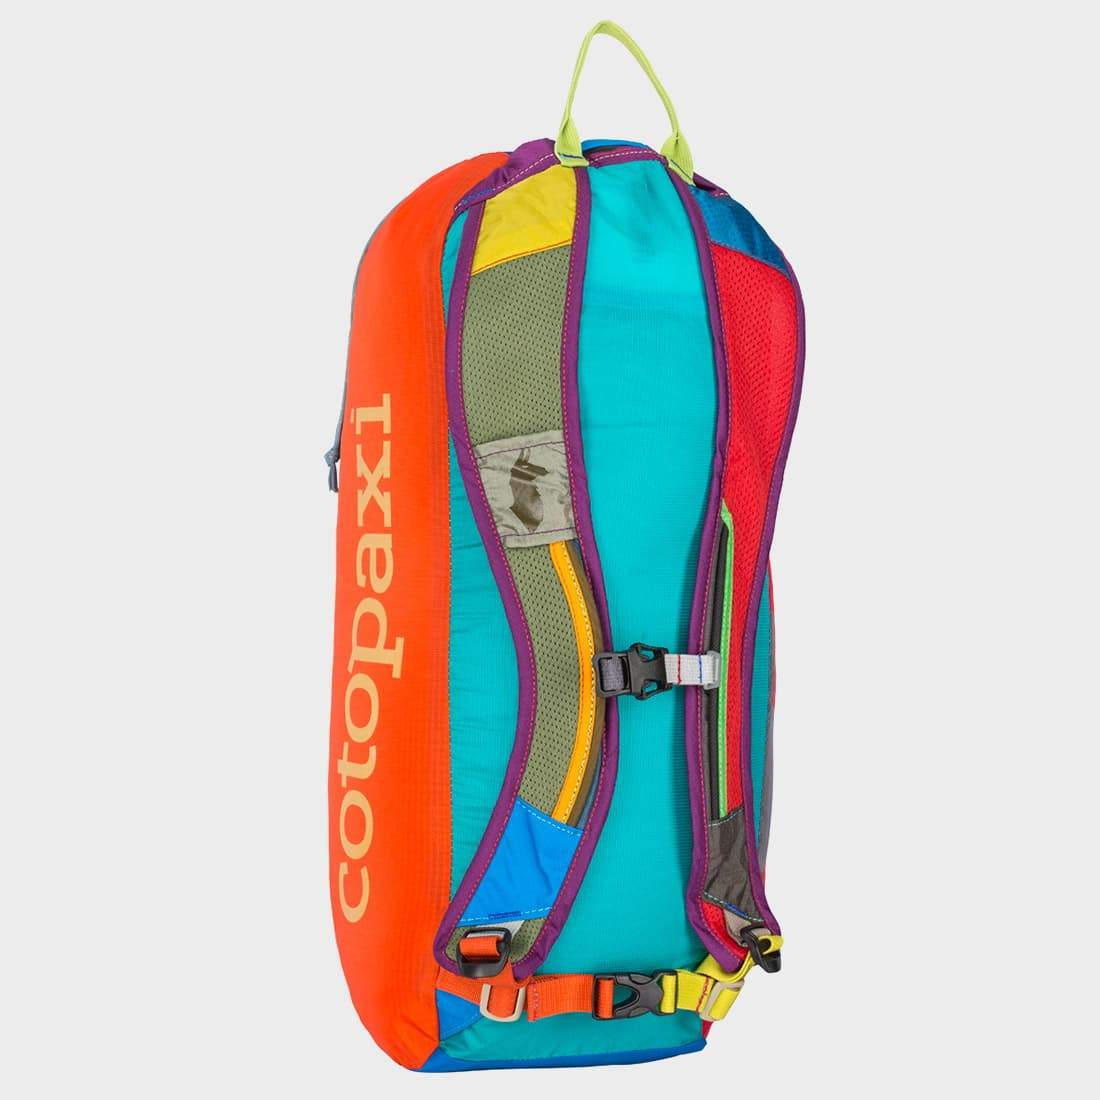 0fb70fdae8 ... product  Cotopaxi Luzon 18L Daypack Assorted ...